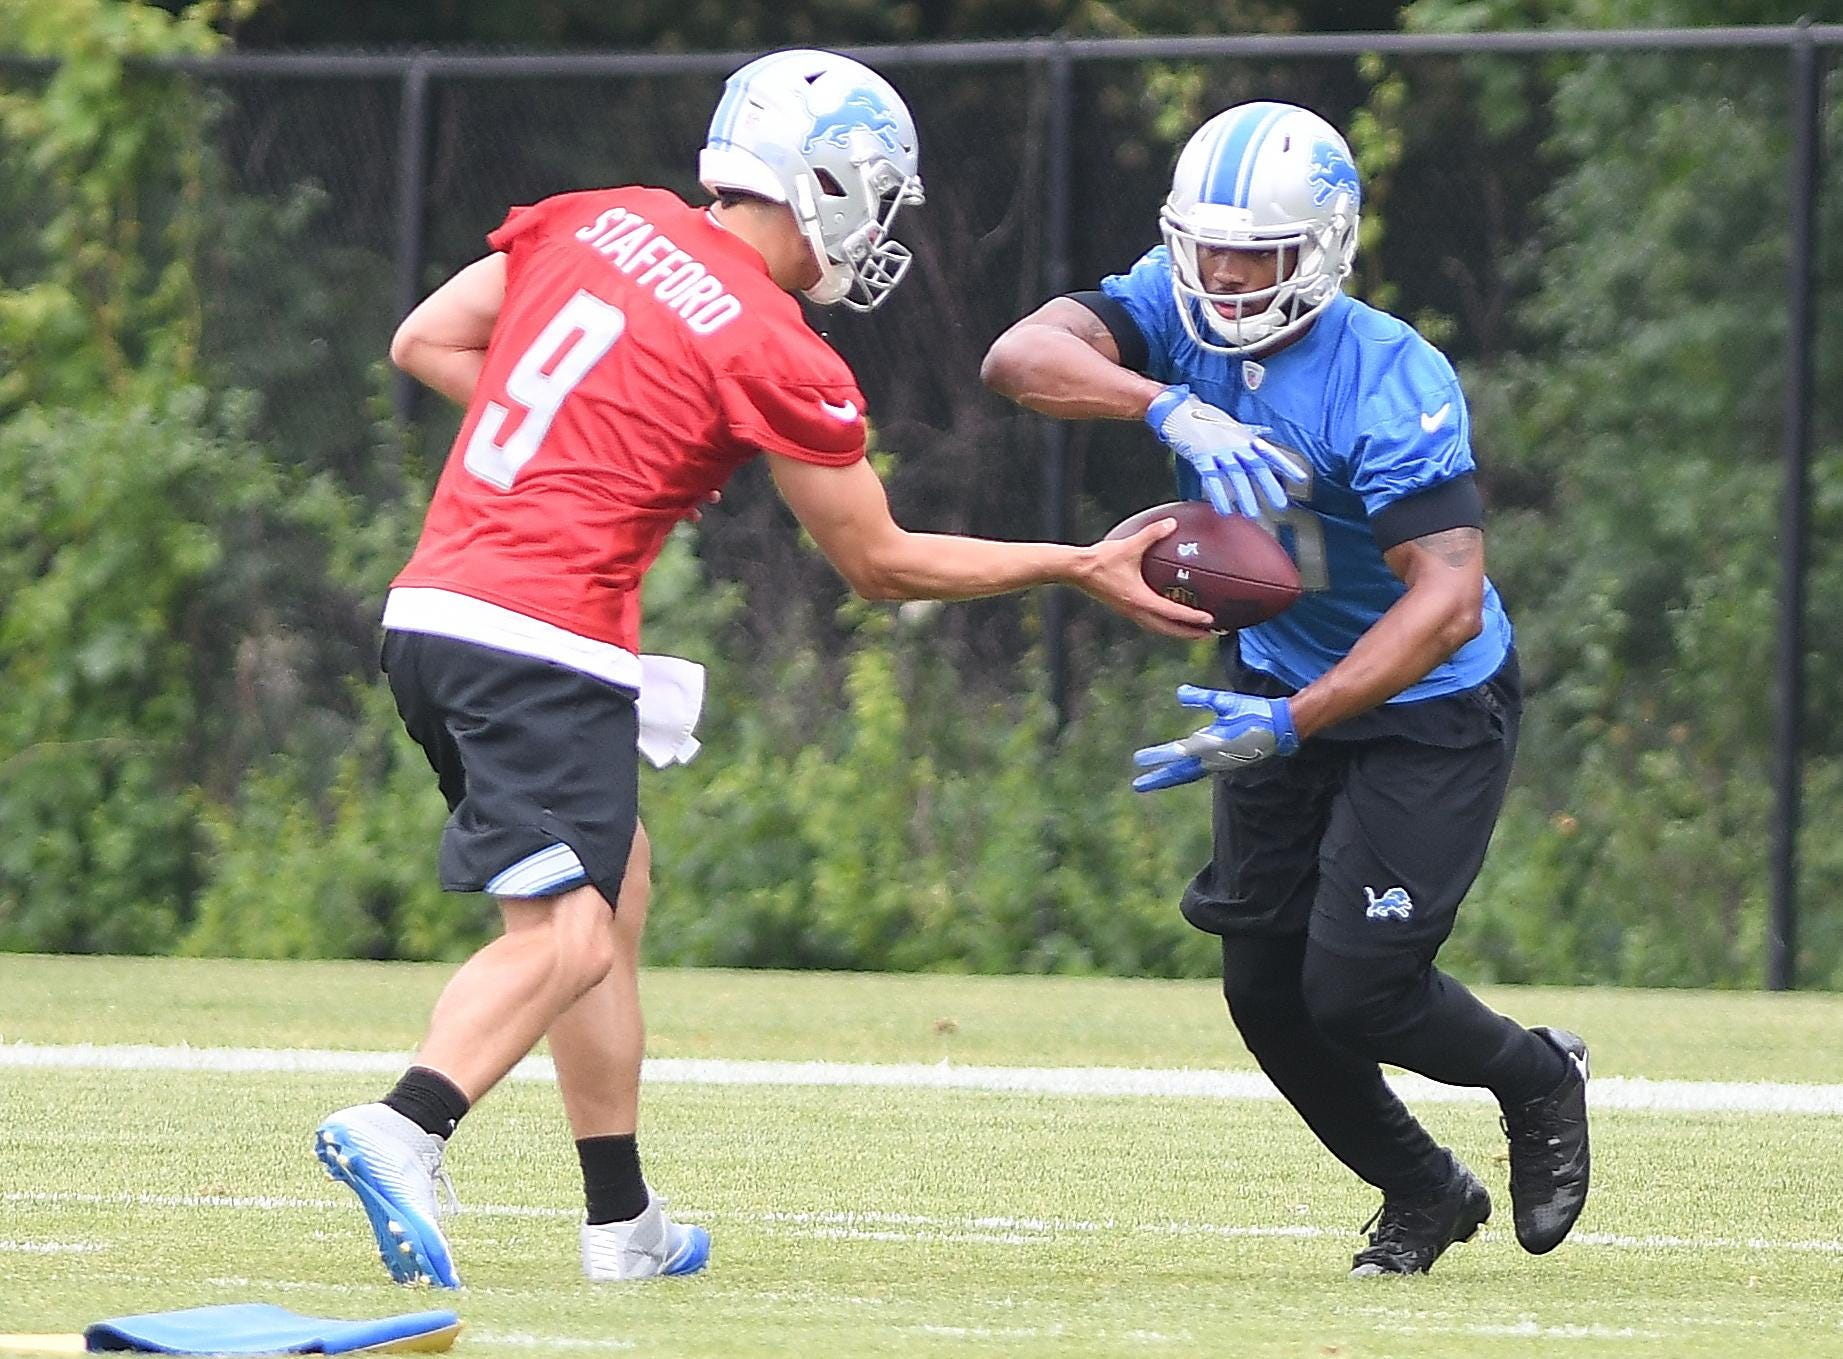 Niyo: Running Lions offense second nature to Stafford